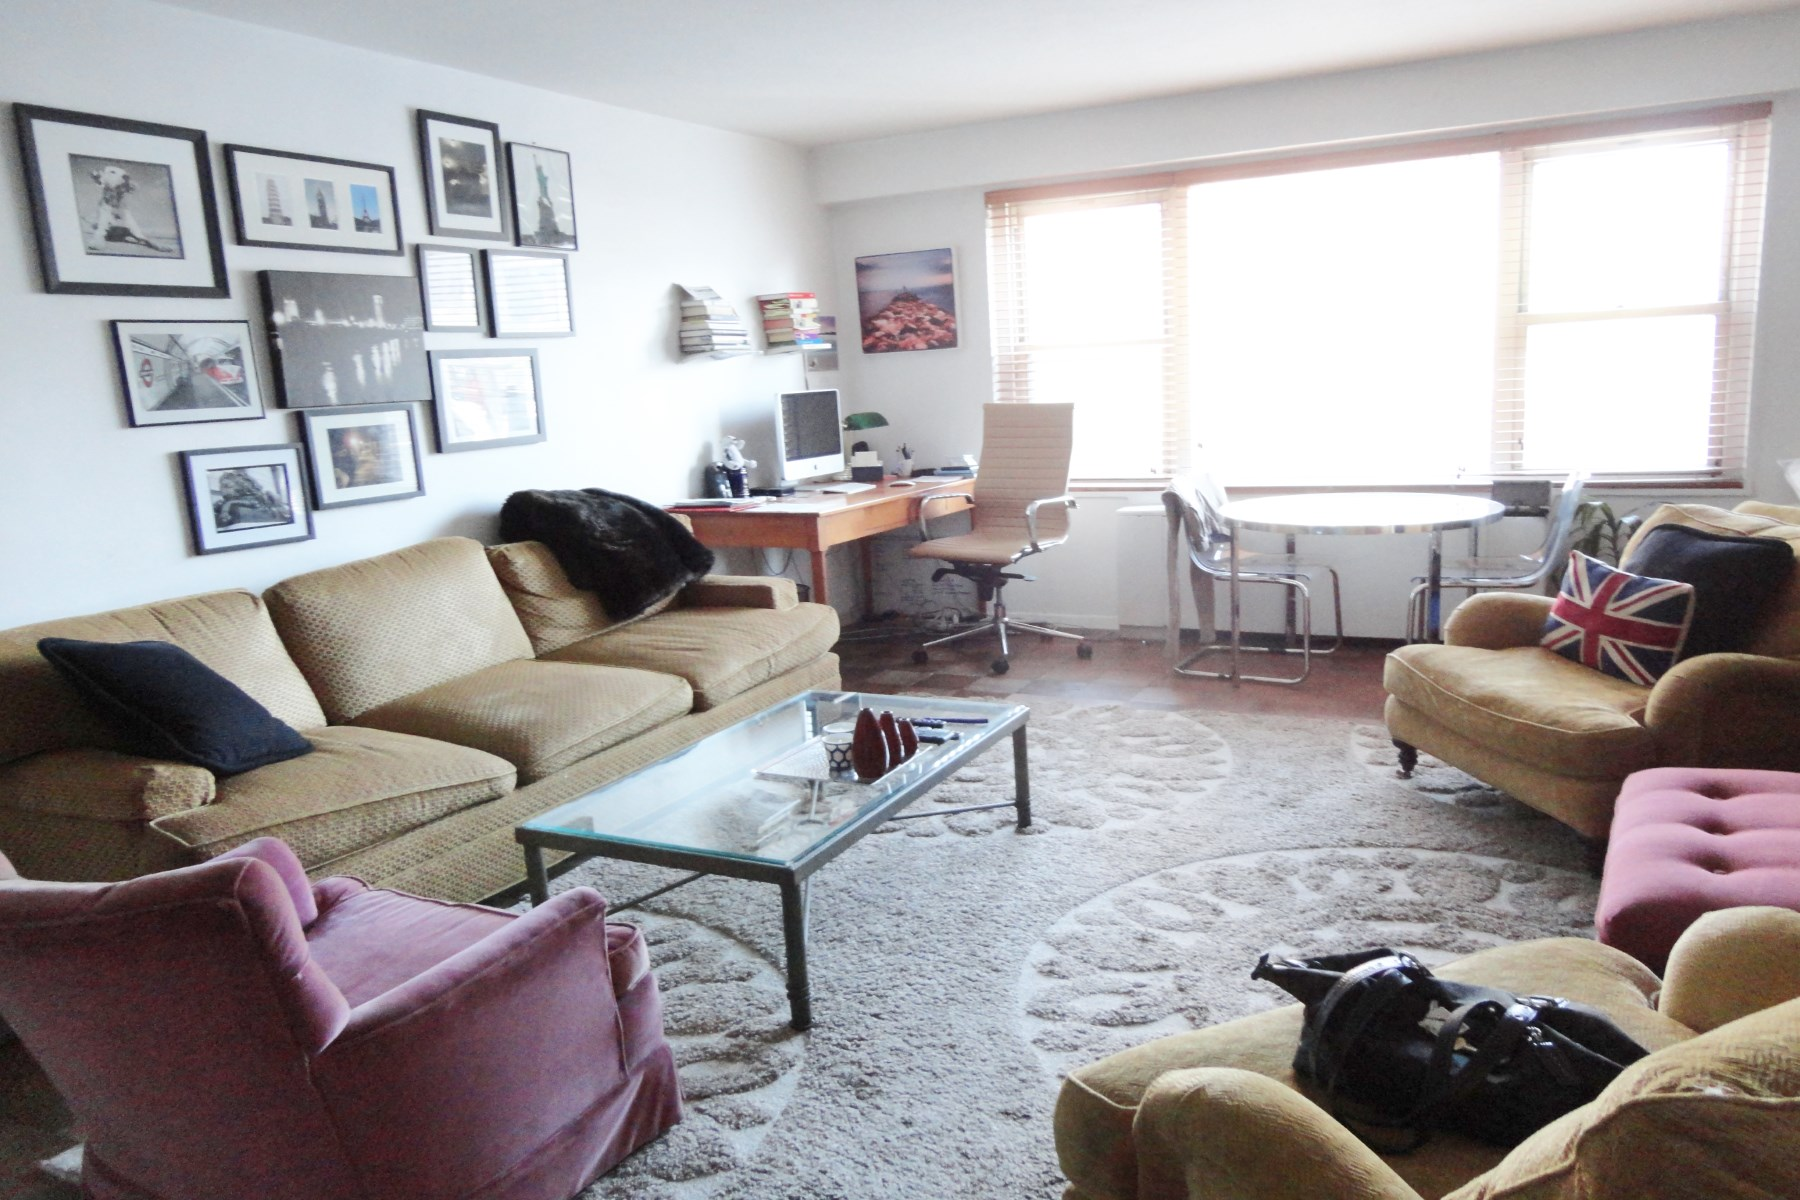 Condominium for Sale at 220 East 60th Street Condo 220 East 60th Street Apt 8L Upper East Side, New York, New York, 10022 United States